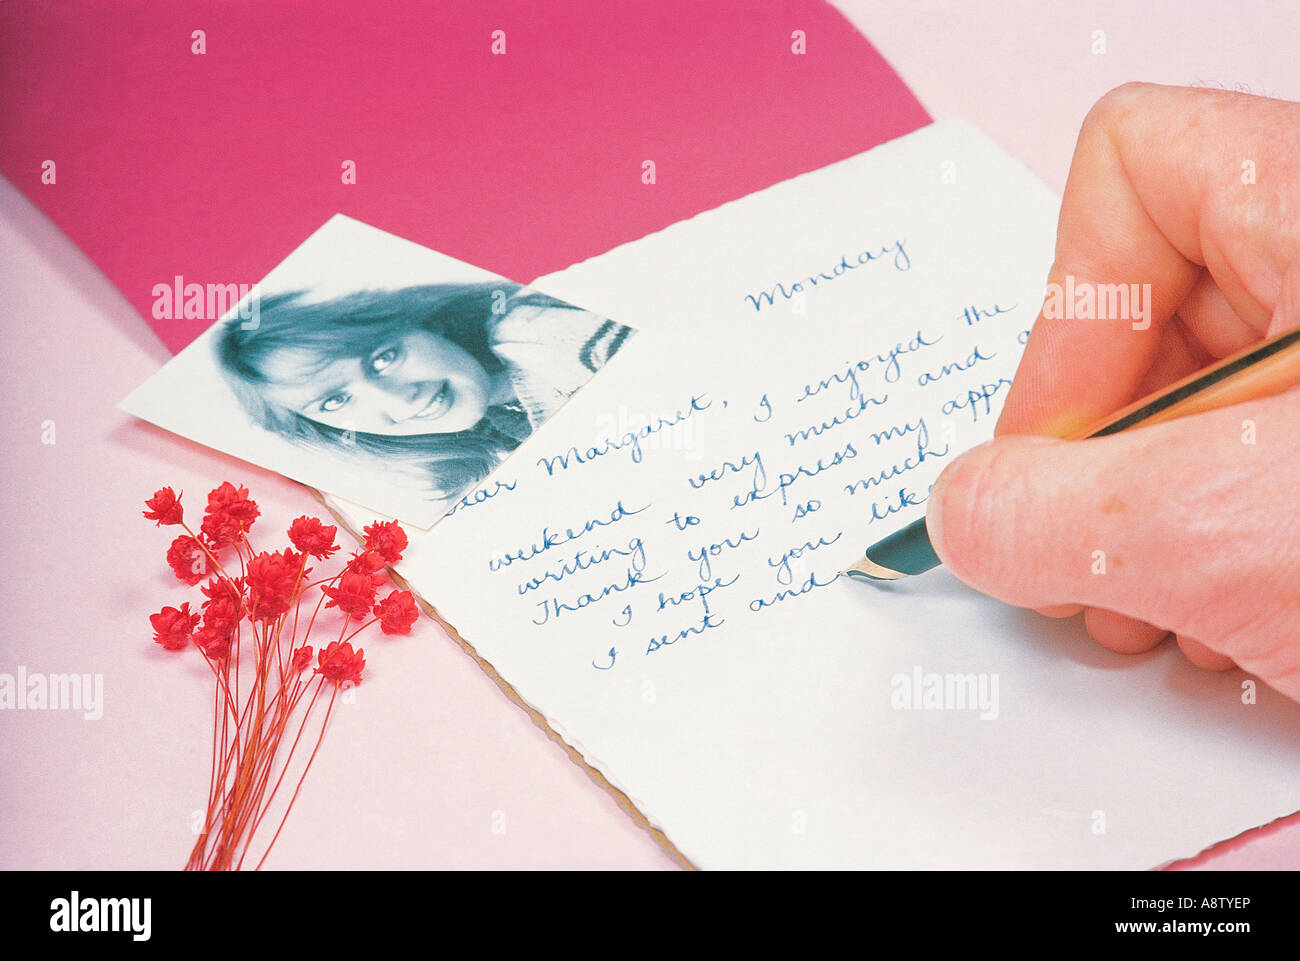 Close-up of man's hand writing a love letter. - Stock Image